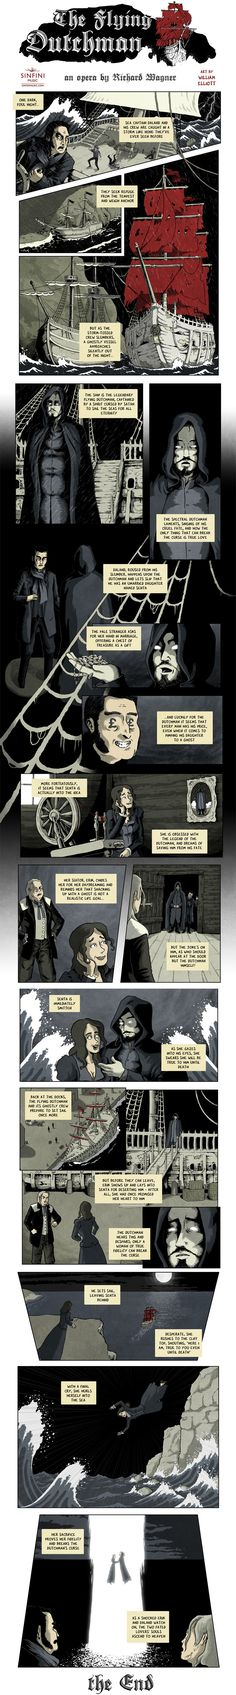 Opera Strip Wagner's The Flying Dutchman: You can hear the terrifying power of the sea pulsing through Richard Wagner's grim tale of a sailor, cursed for eternity, and his desperate attempt to find love and redemption.